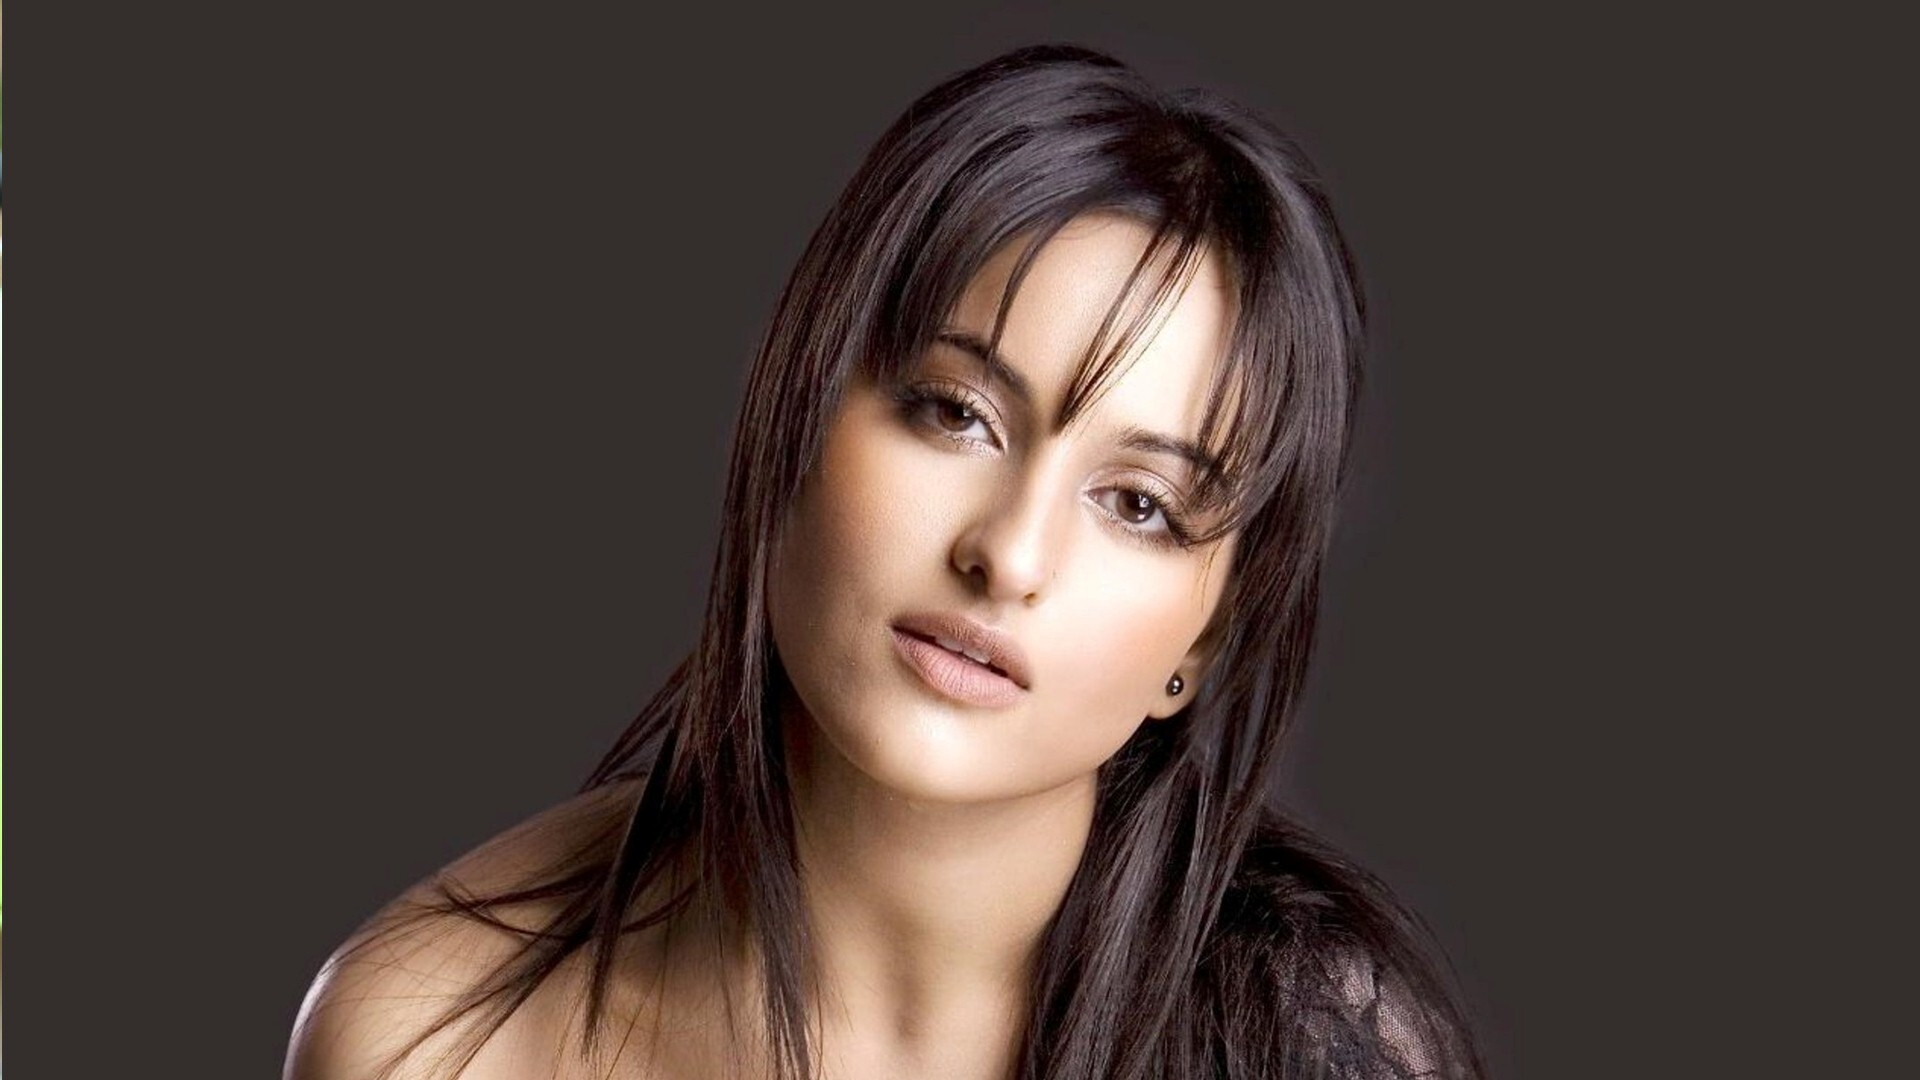 sonakshi sinha hd wallpaper | hd wallpapers